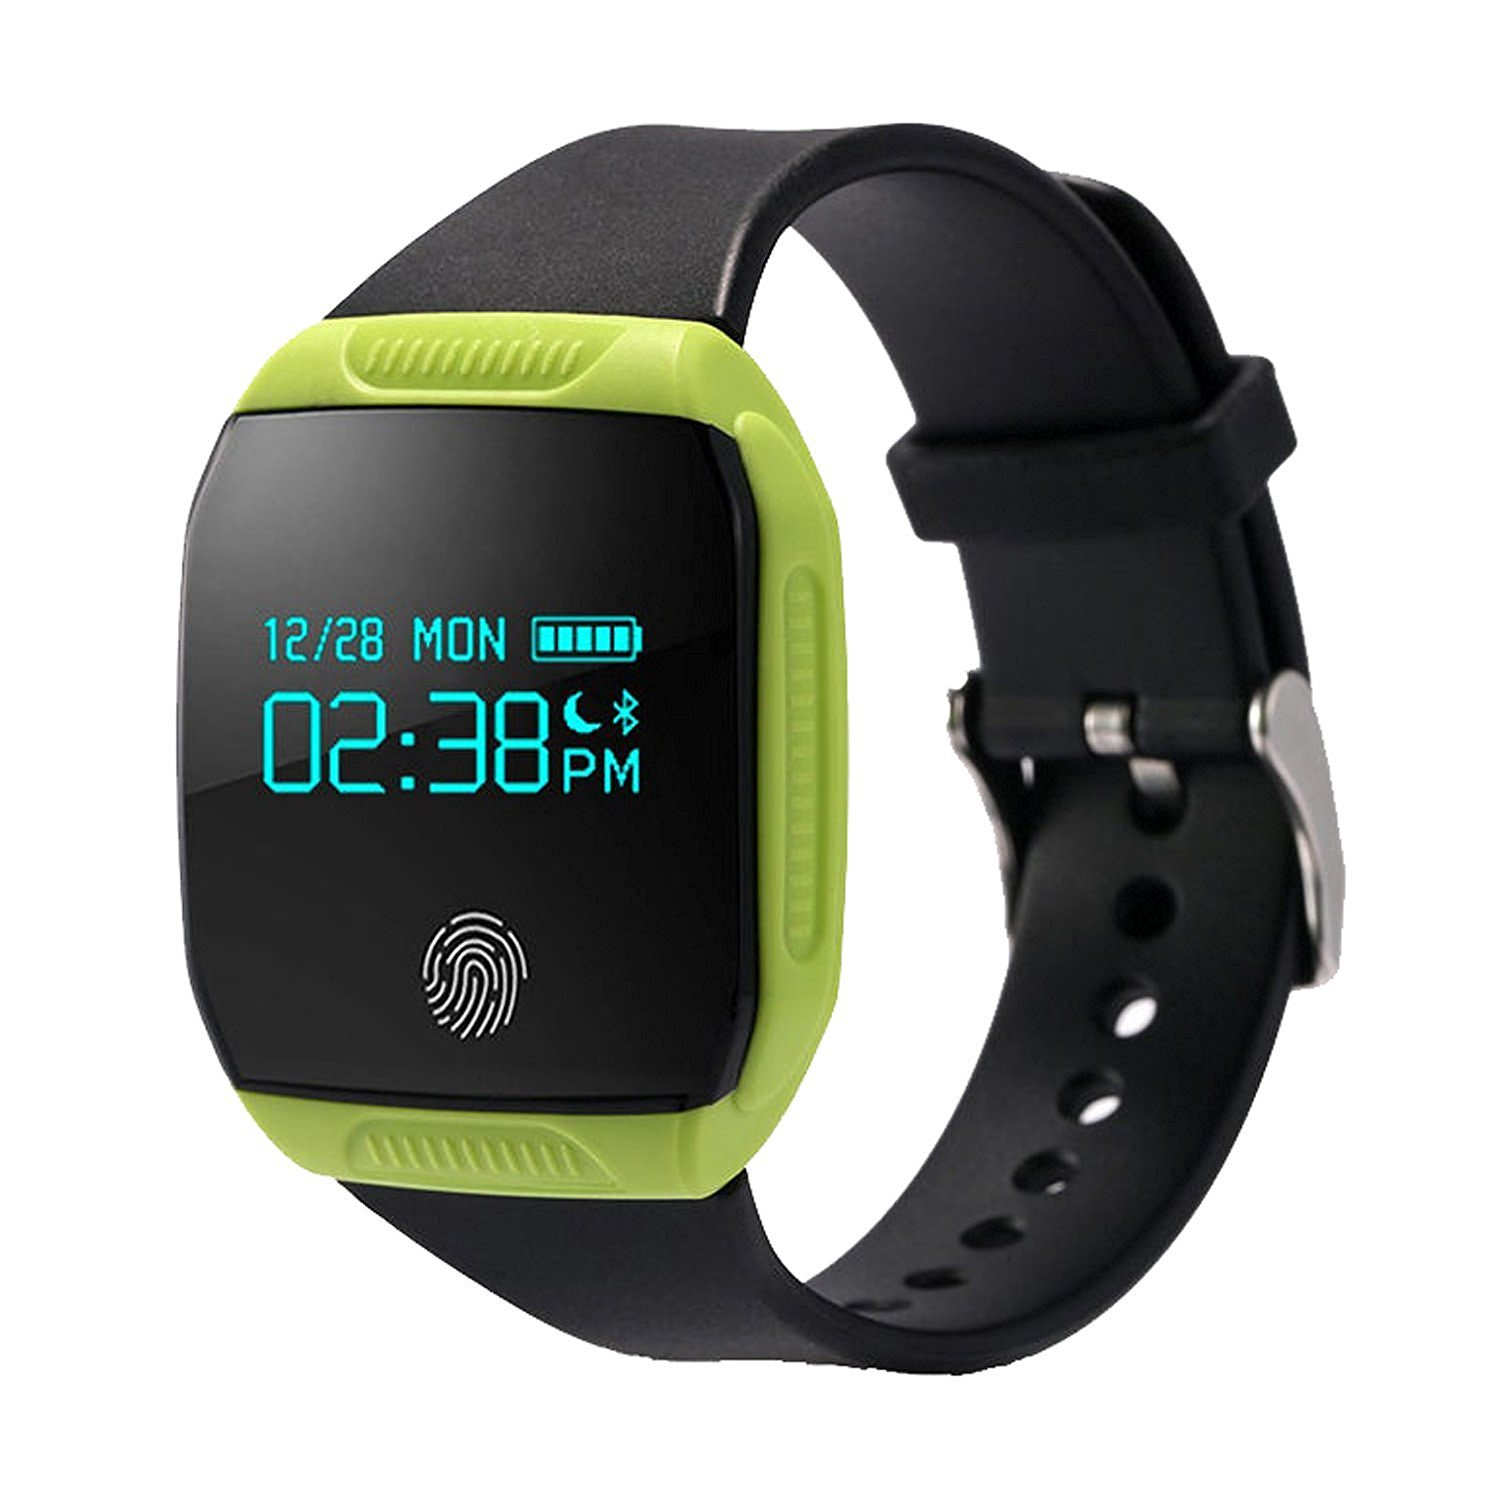 dit fitness watches iwownfit tracker reviews wristband tracking smart pro for